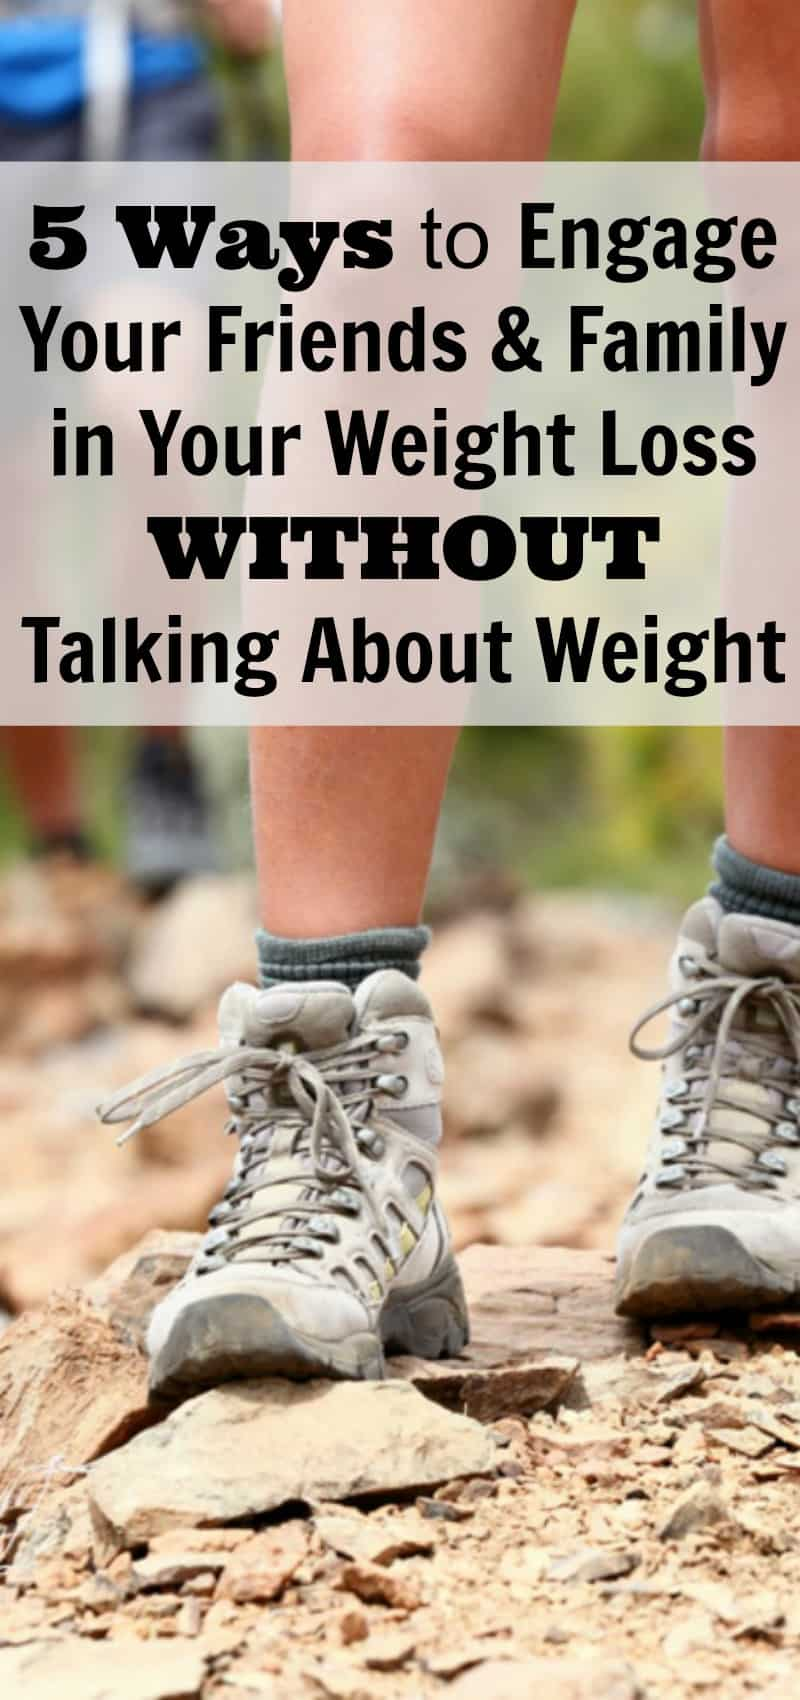 5 Ways to Engage Friends and Family in Your Weight Loss Without Talking About Weight